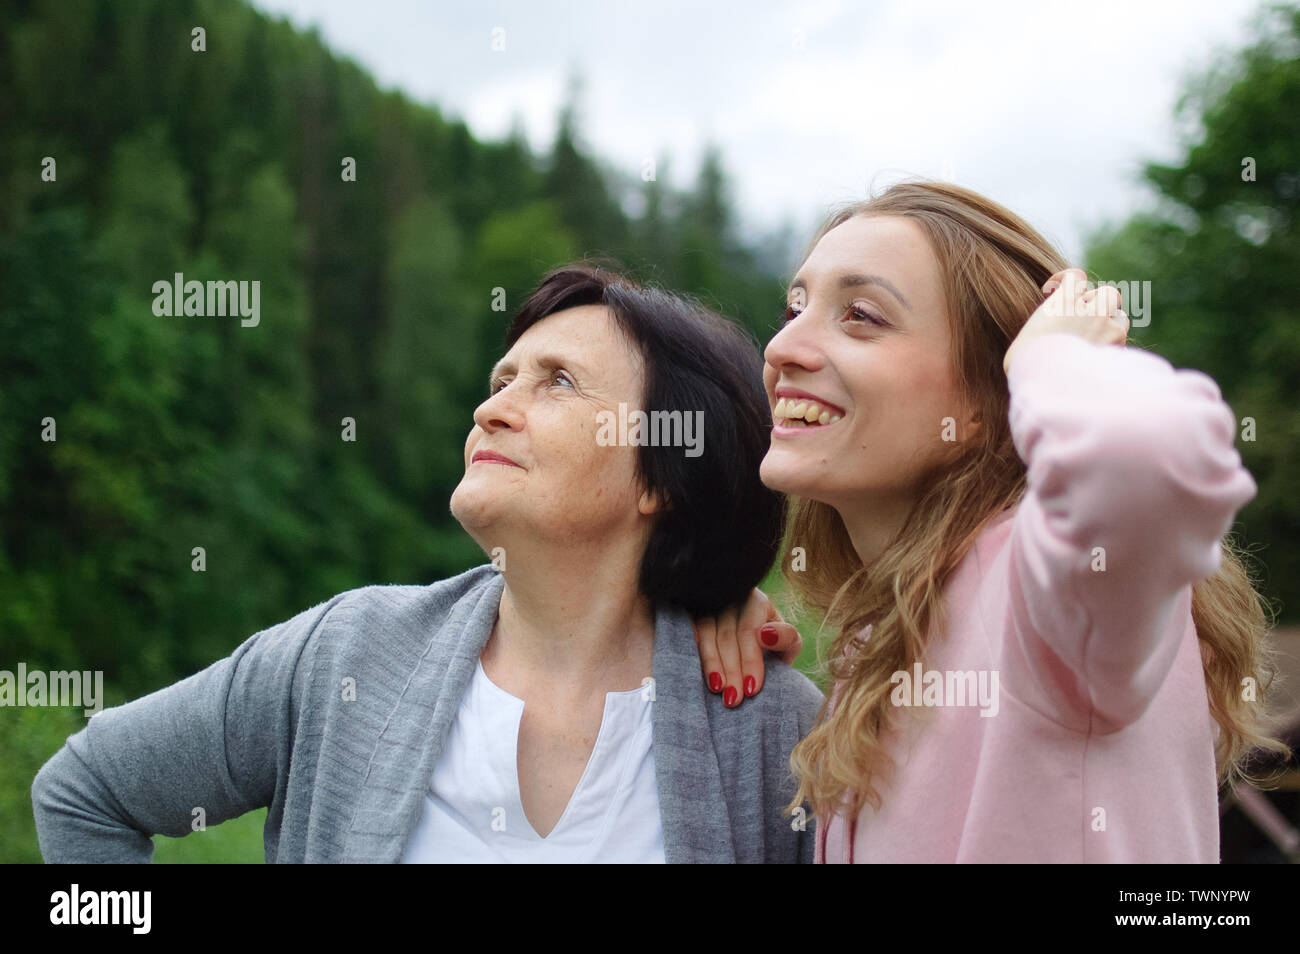 Happy mother and daughter traveling and posing together over landscape of forest and mountains - Stock Image